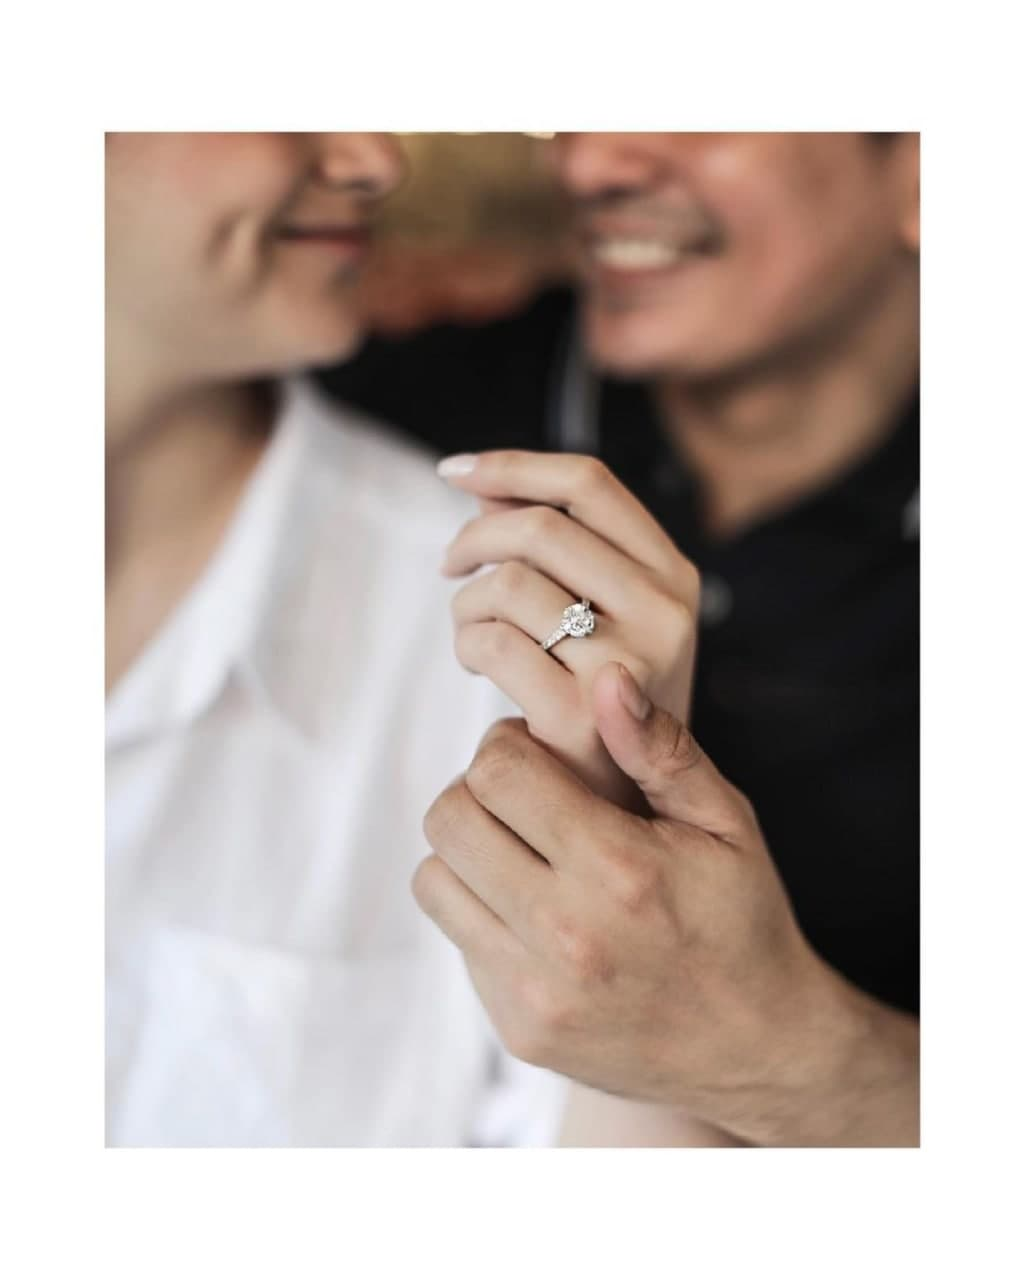 Carla Abellana with Tom Rodriguez featuring her engagement ring